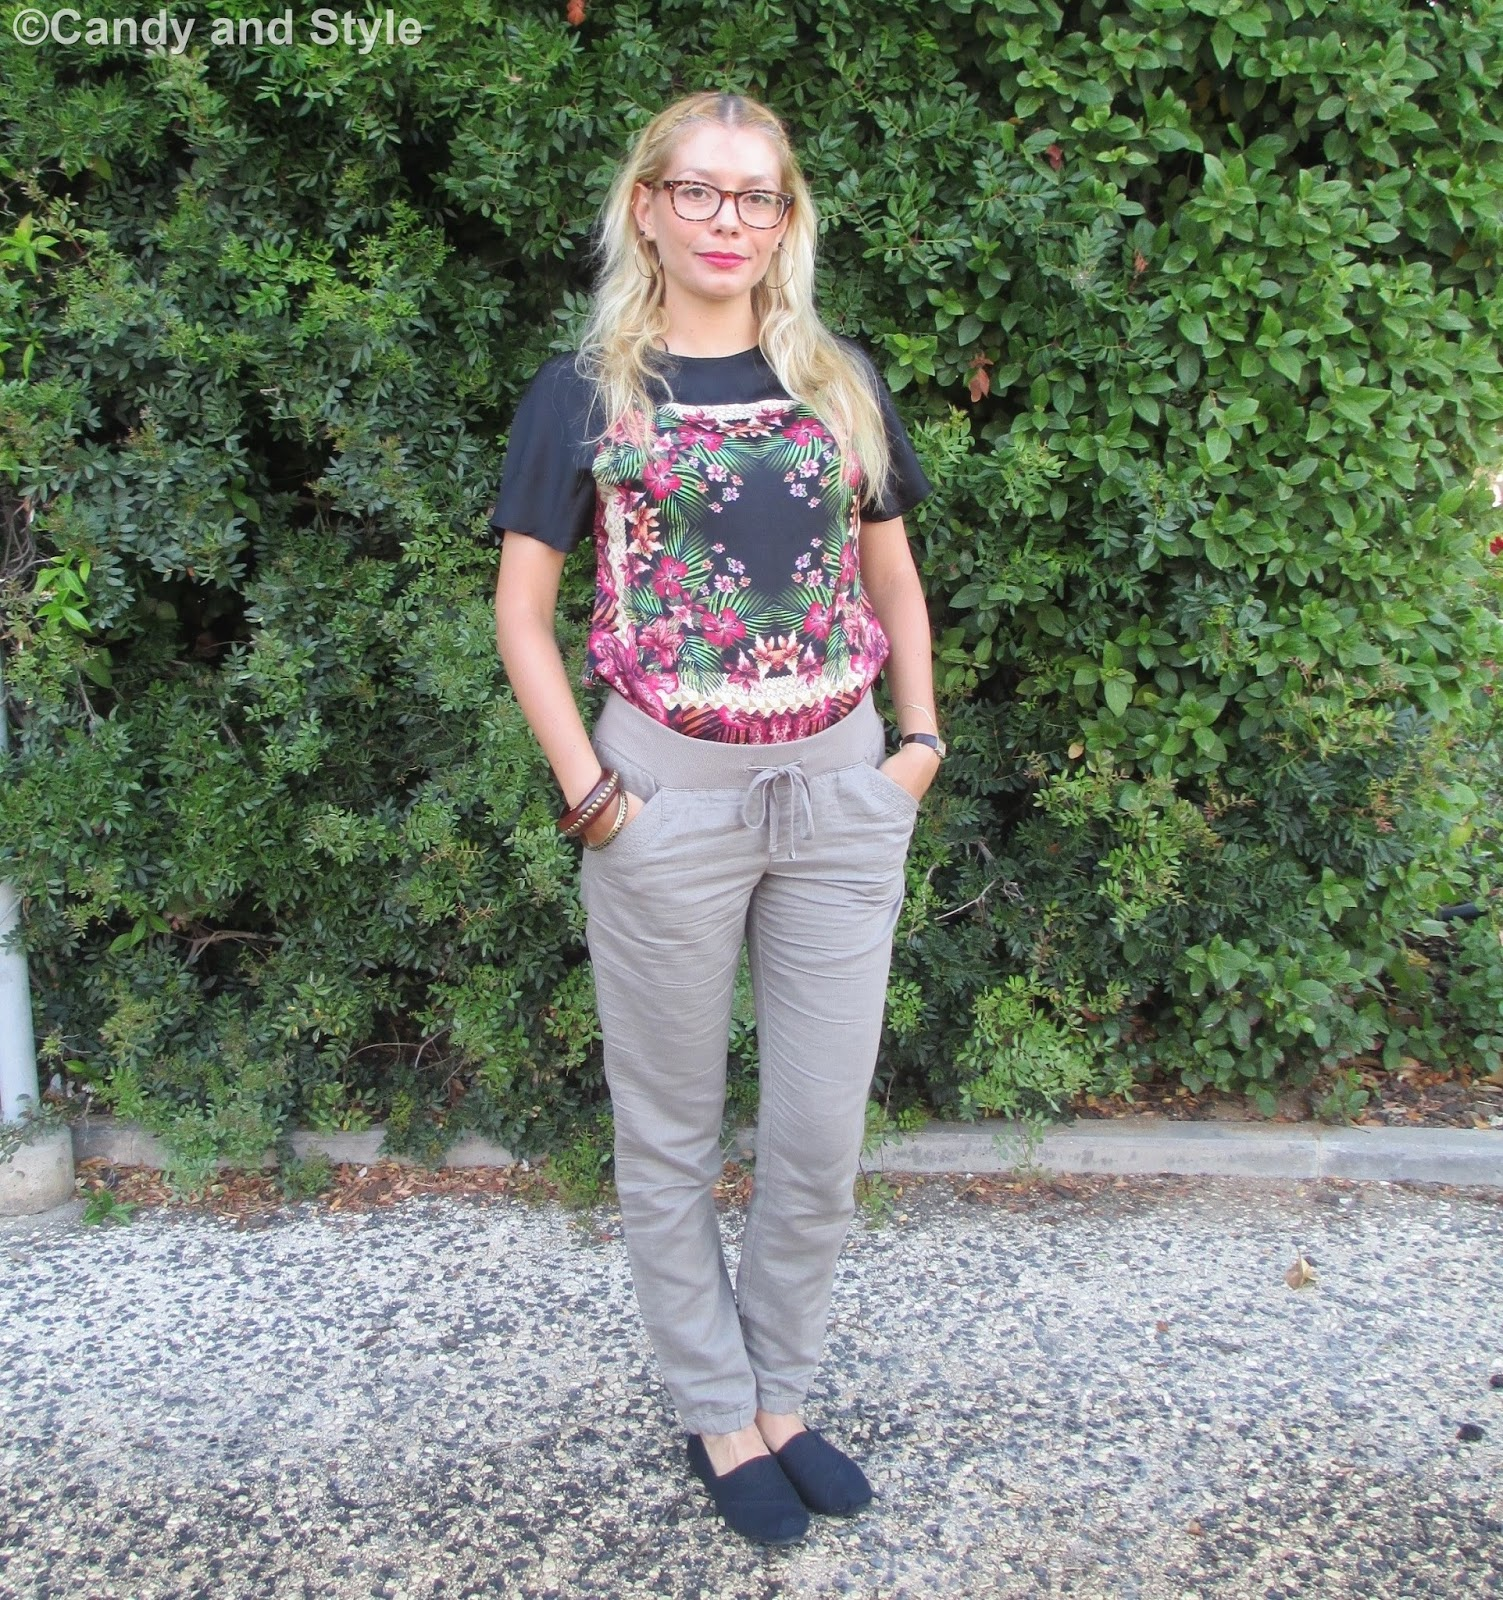 Casual Look - Lilli, Candy and Style Fashion Blog